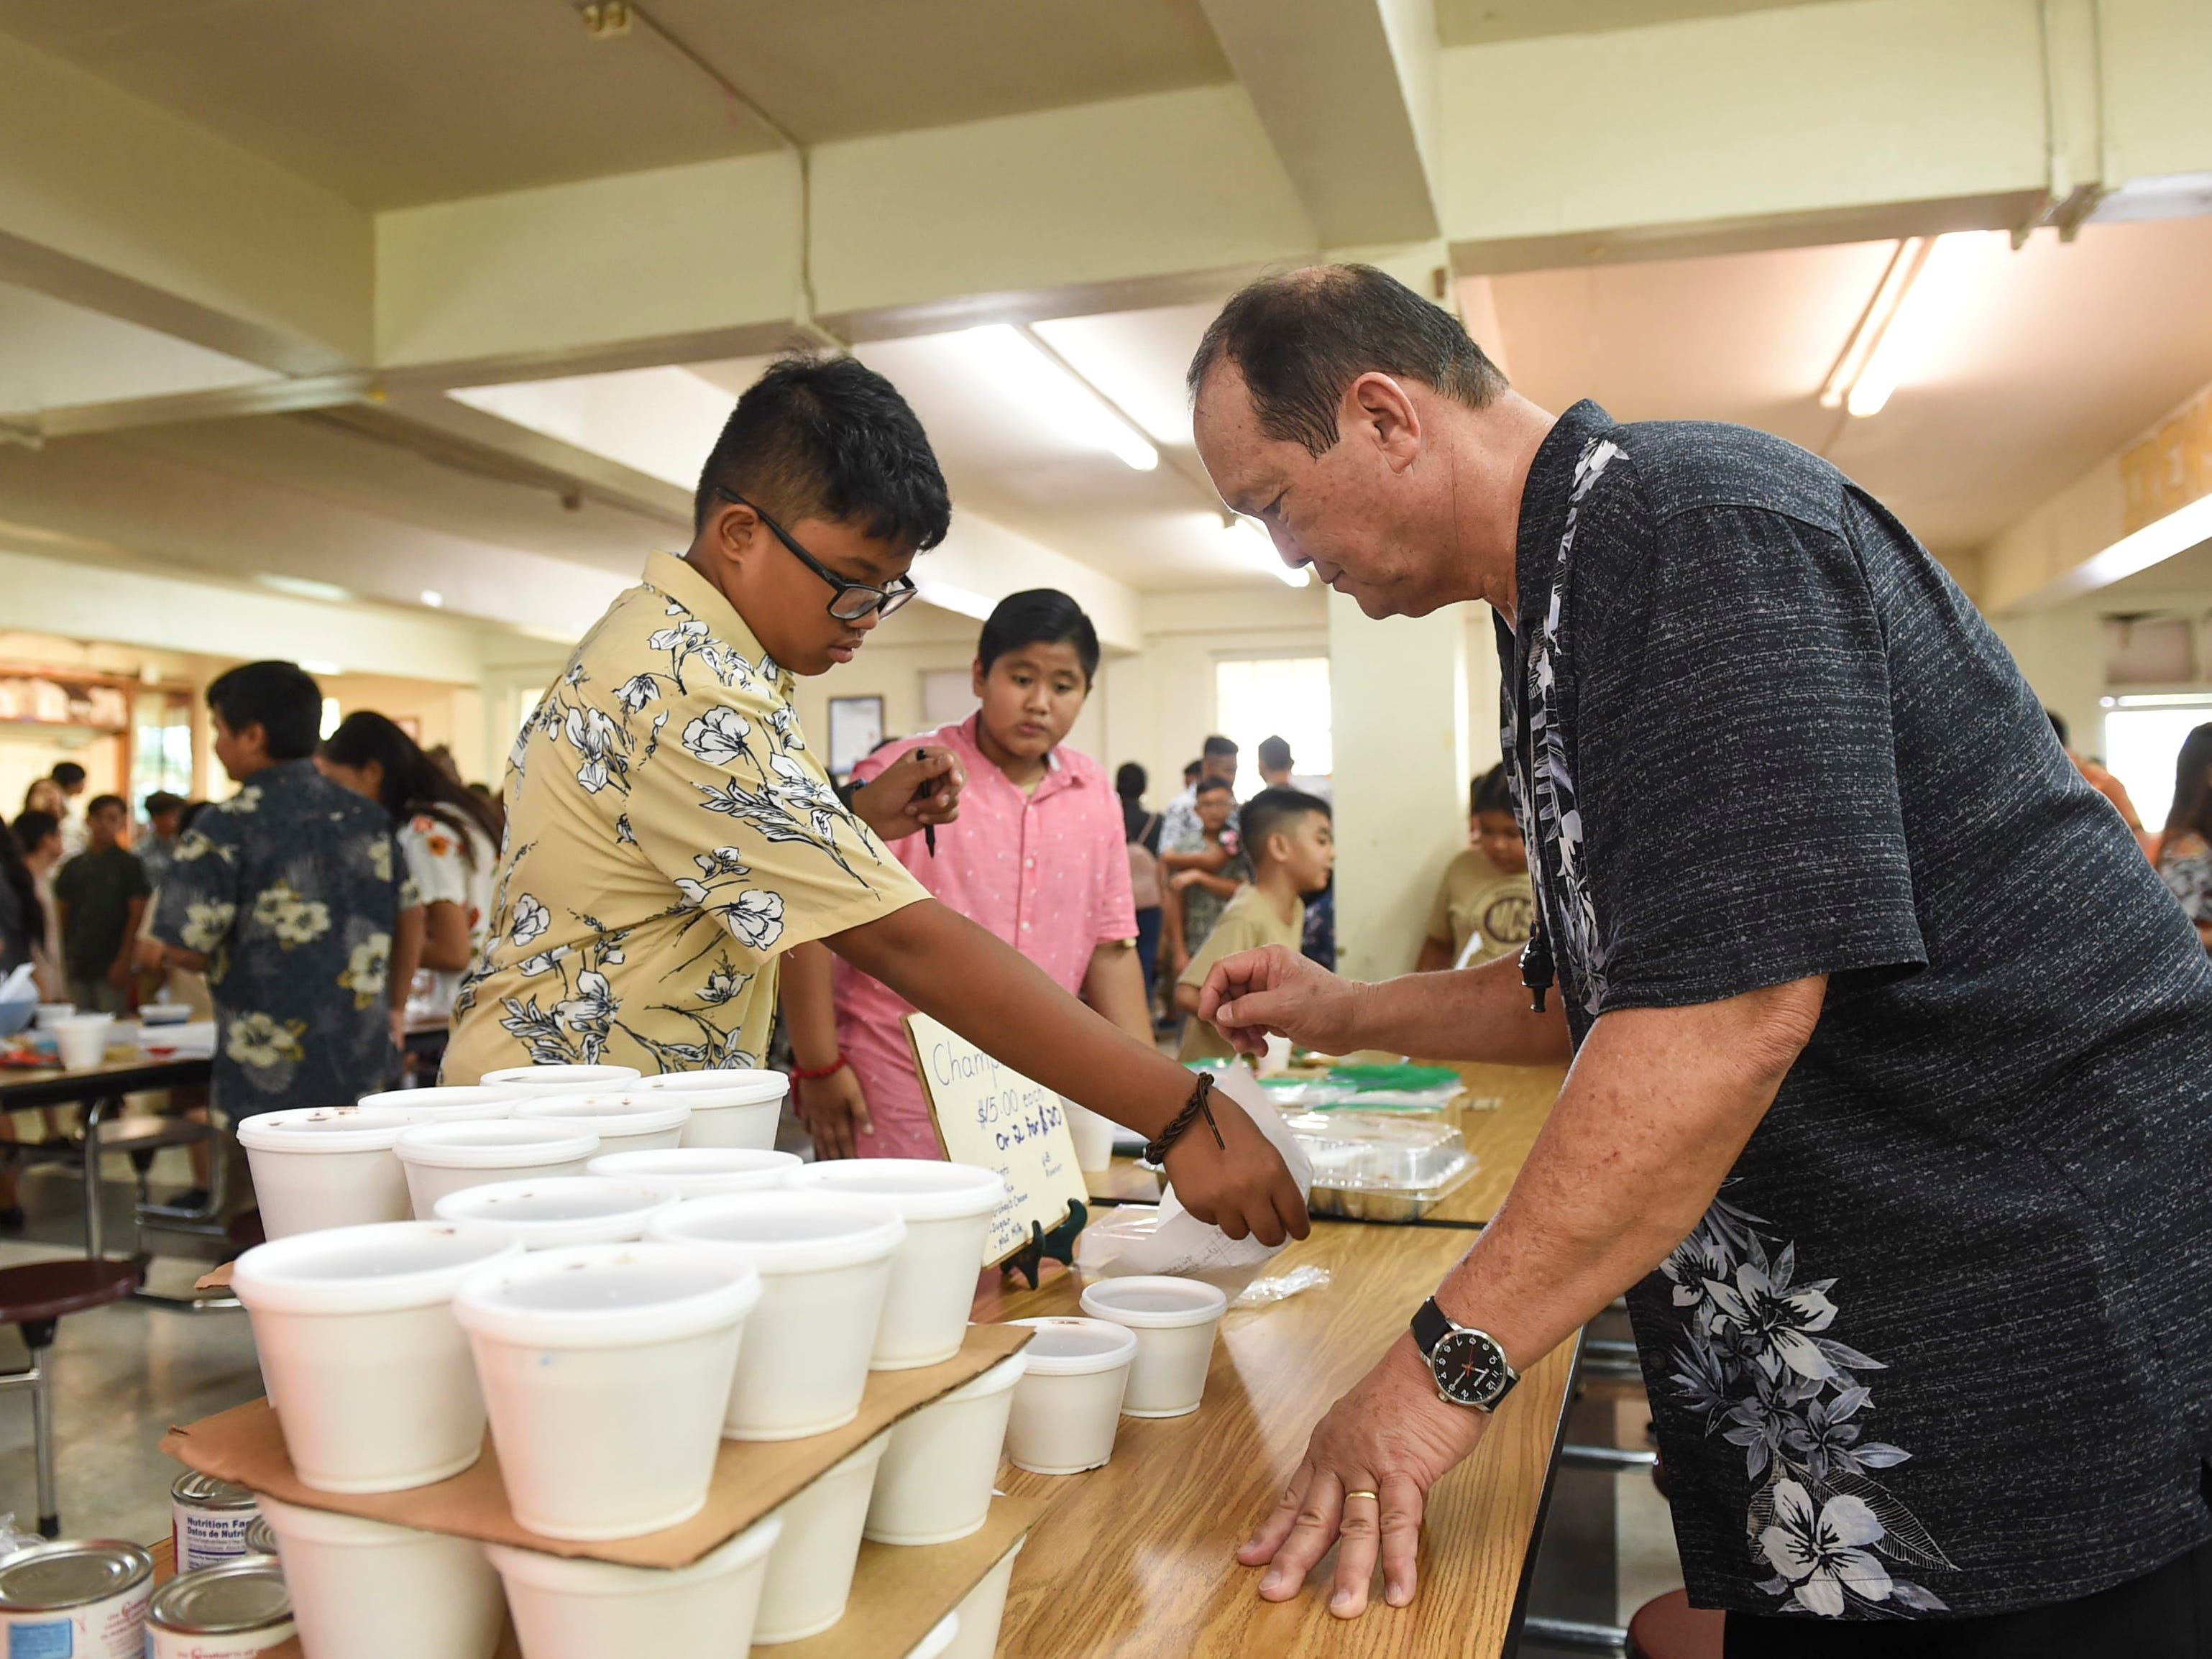 Raenier Perez, 12, makes a champorado sale to Principal Bill Sarmiento during the 5th Annual Ysrael School of Business Retail Bazaar and Entrepreneur Fair at Our Lady of Mount Carmel Catholic School in Agat, Jan. 18, 2019.